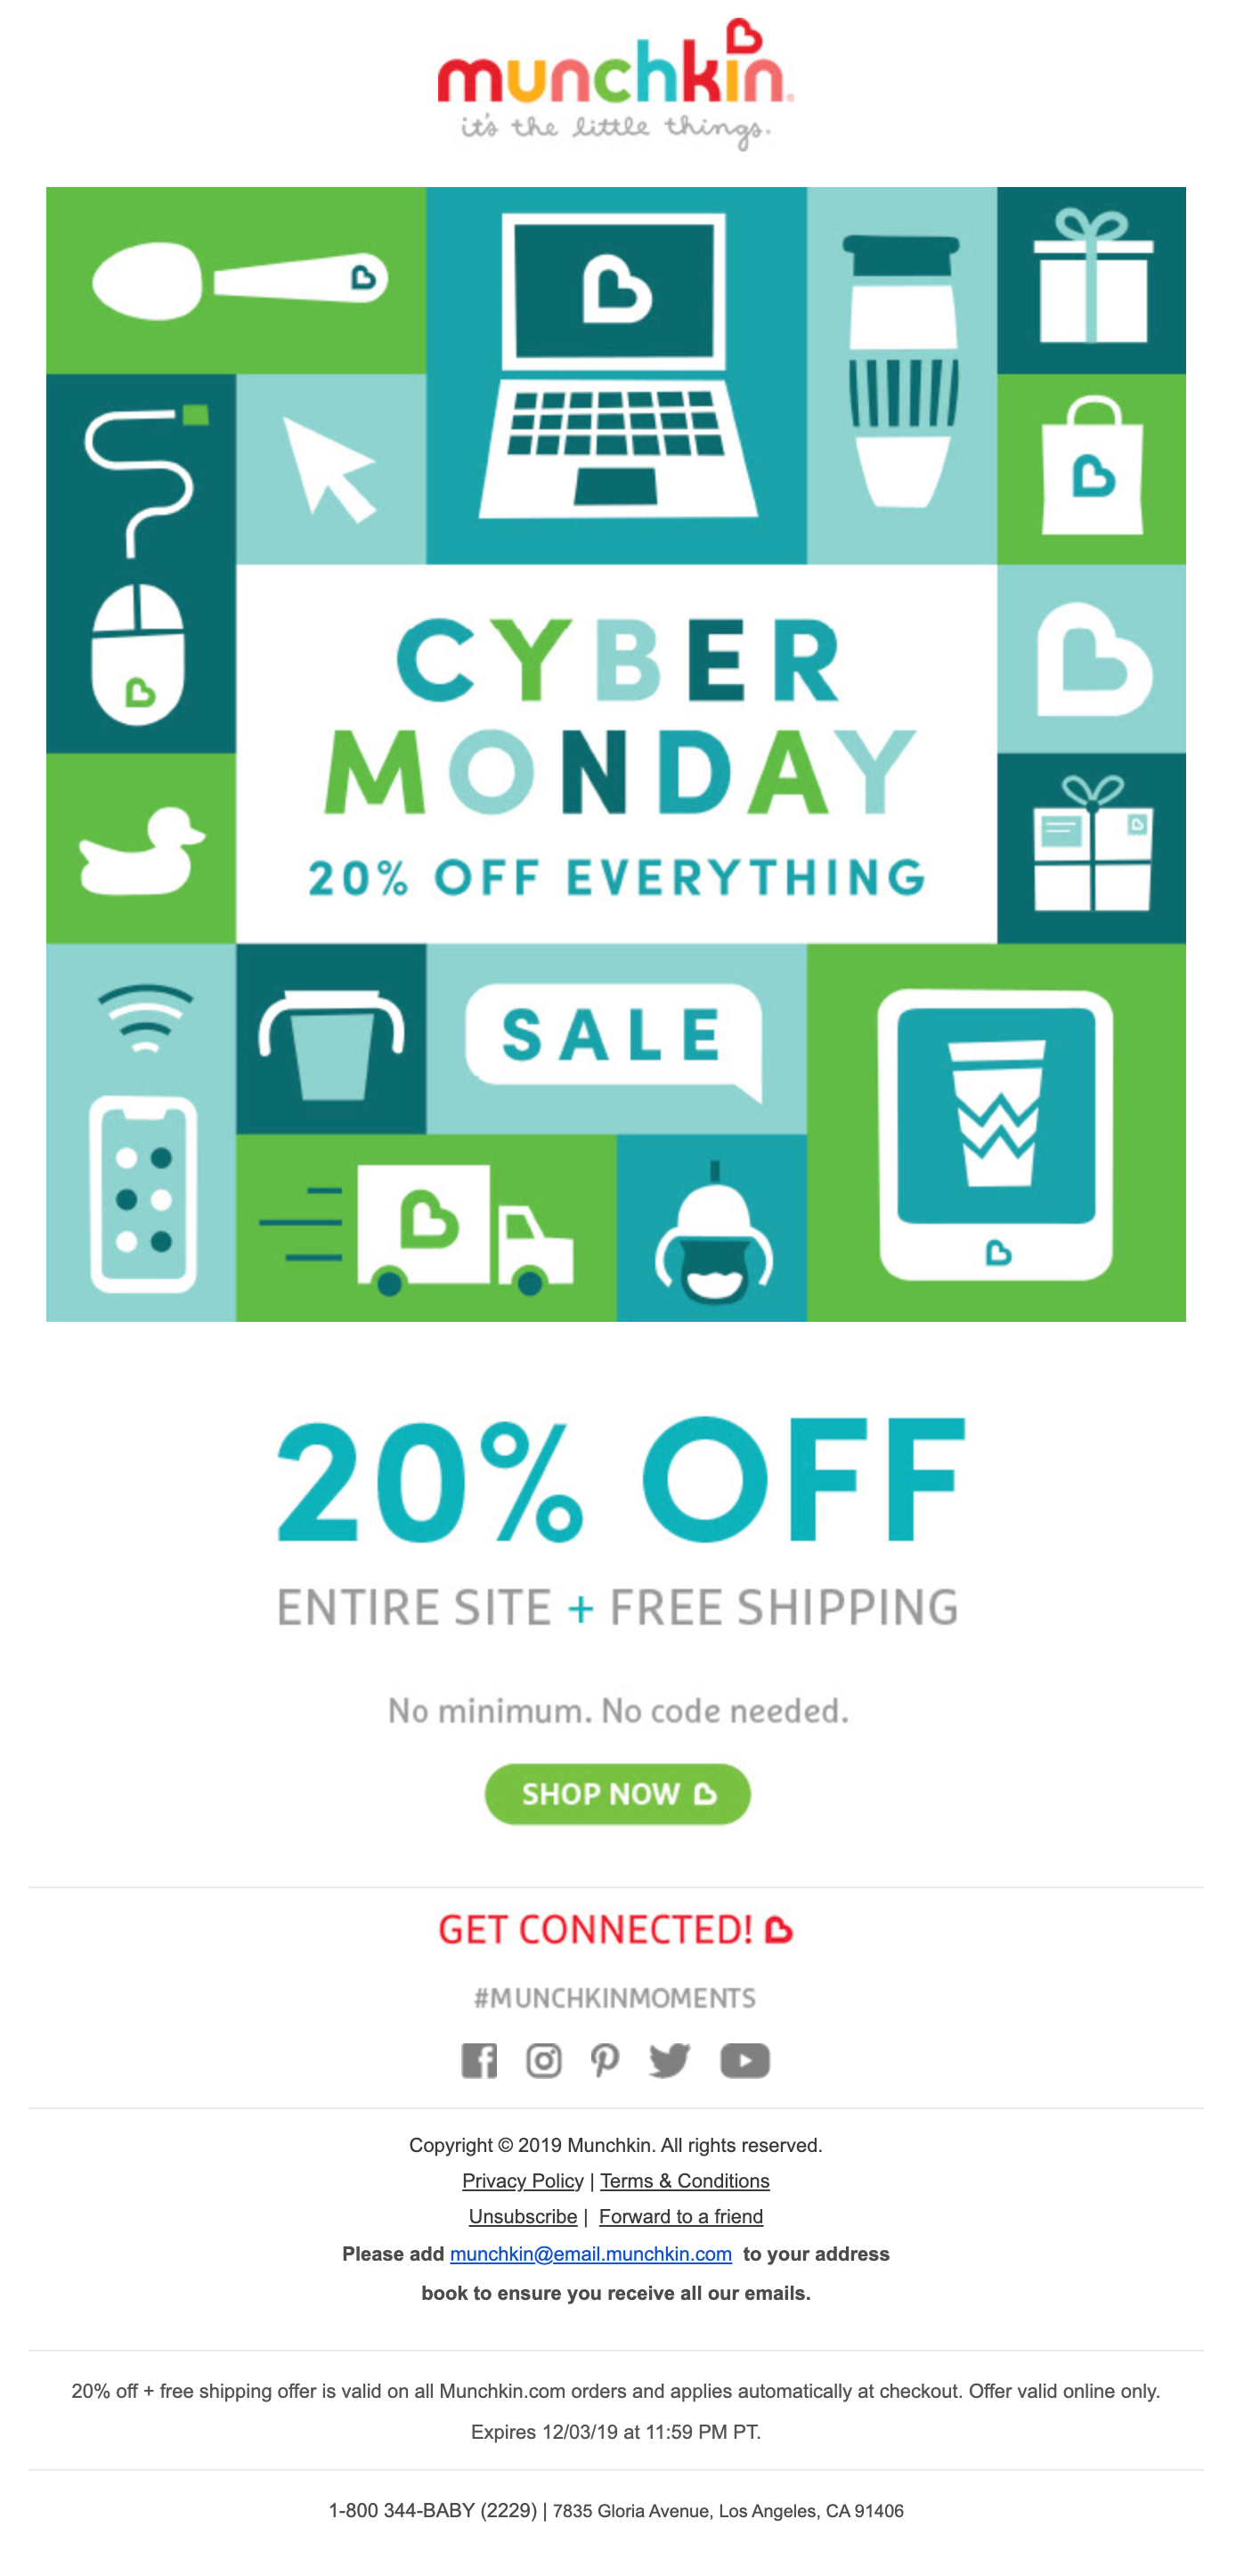 Munchkin's Cyber Monday email